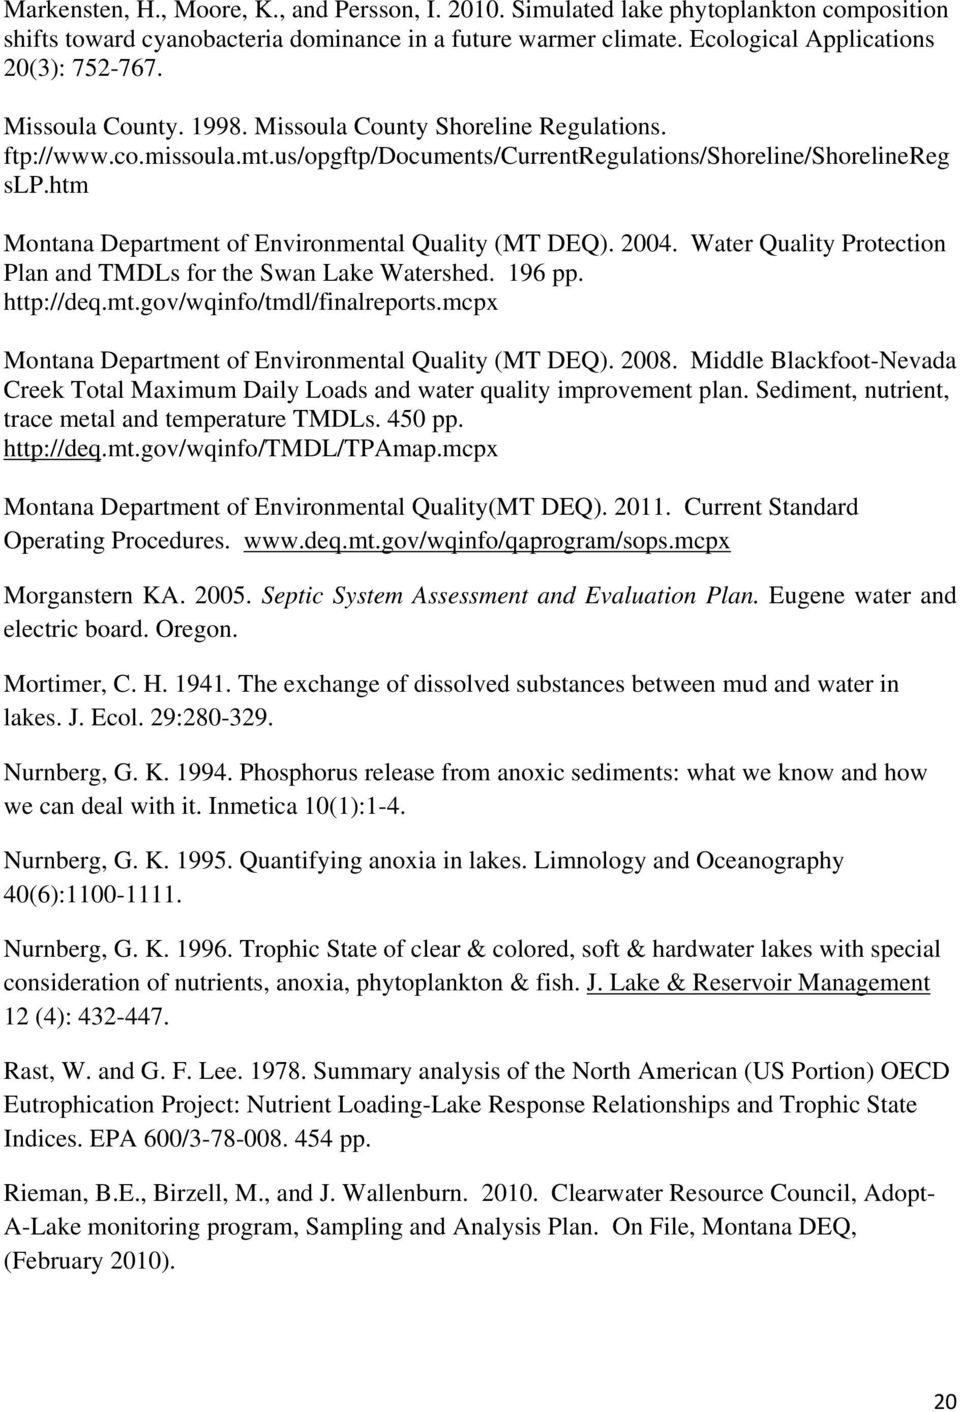 htm Montana Department of Environmental Quality (MT DEQ). 24. Water Quality Protection Plan and TMDLs for the Swan Lake Watershed. 196 pp. http://deq.mt.gov/wqinfo/tmdl/finalreports.